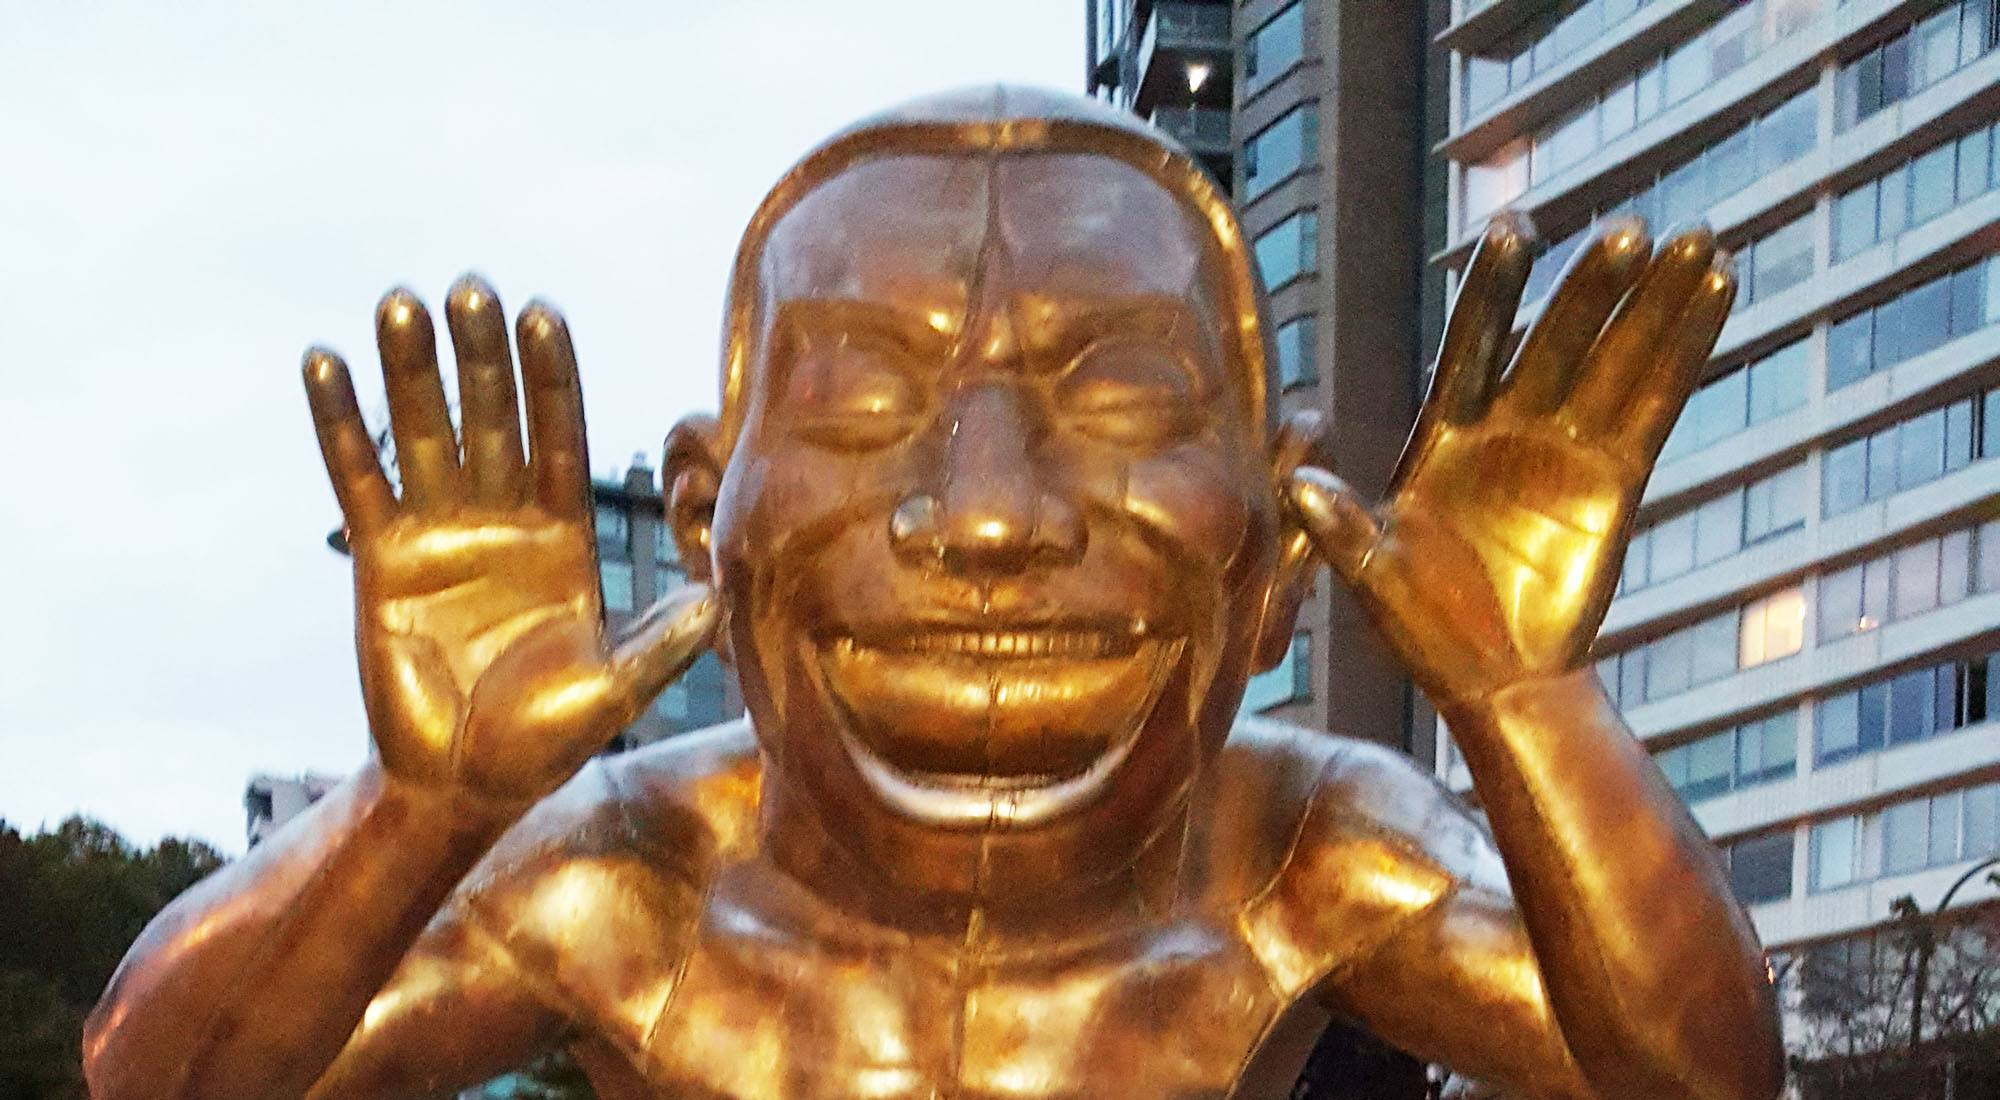 Vancouver's laughing statue gets custom fitted jeans